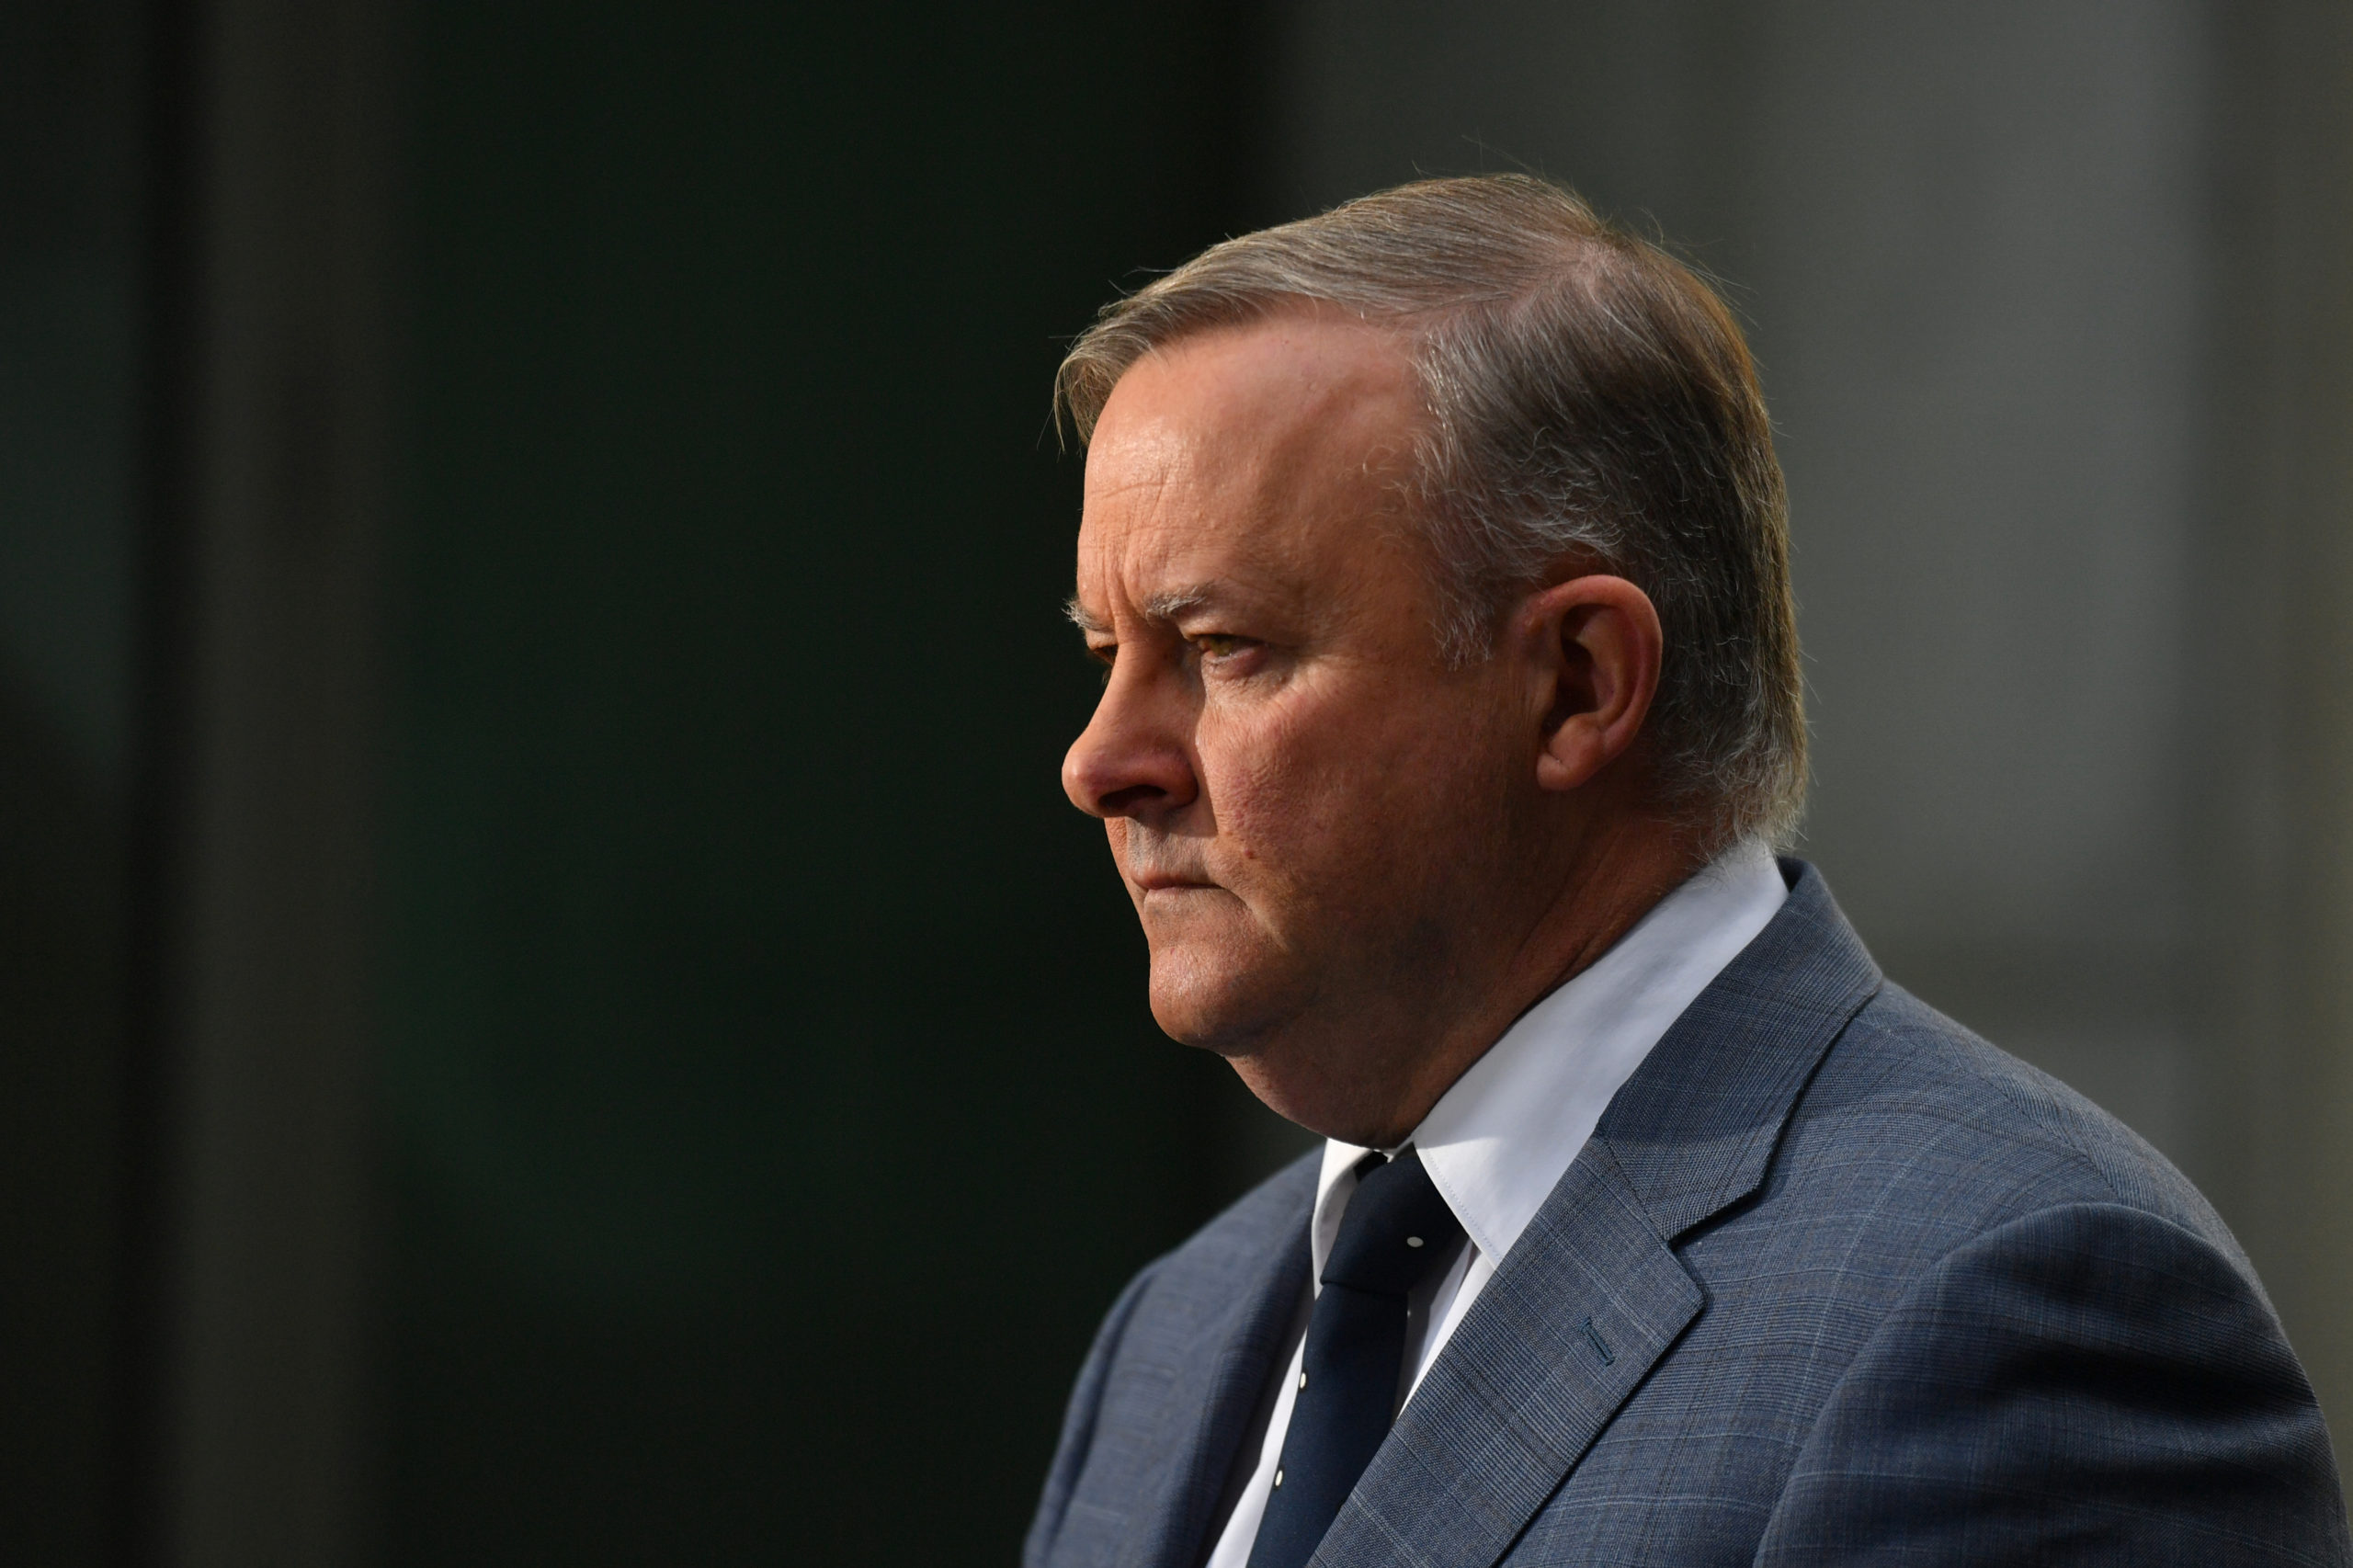 Labor leader Anthony Albanese (Image: AAP/Mick Tsikas)